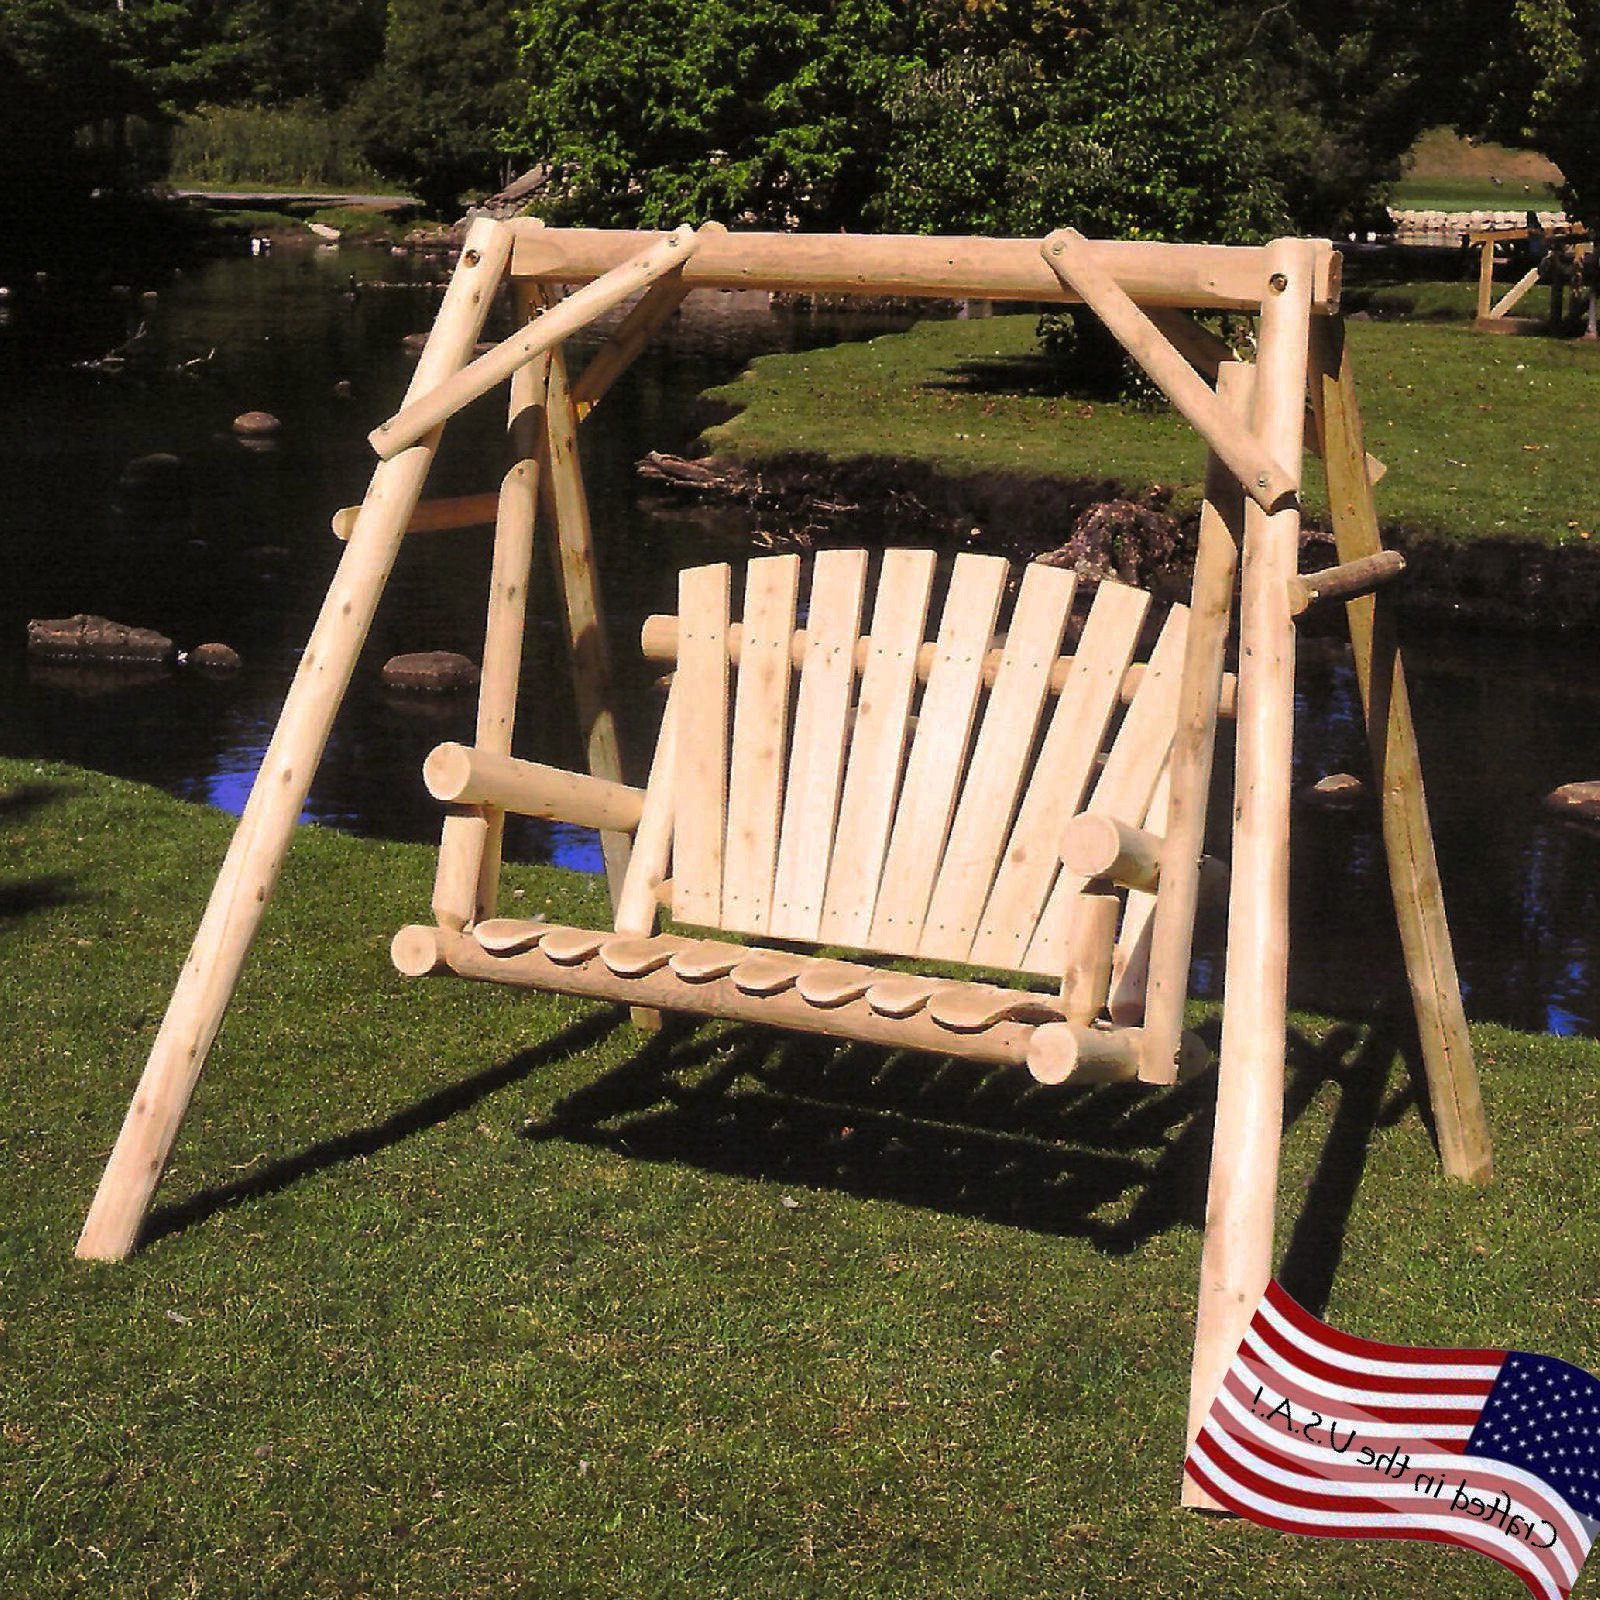 Lakeland Mills White Cedar Log Porch Swing And Stand Set – Walmart Intended For Most Recently Released Porch Swings With Stand (View 2 of 25)